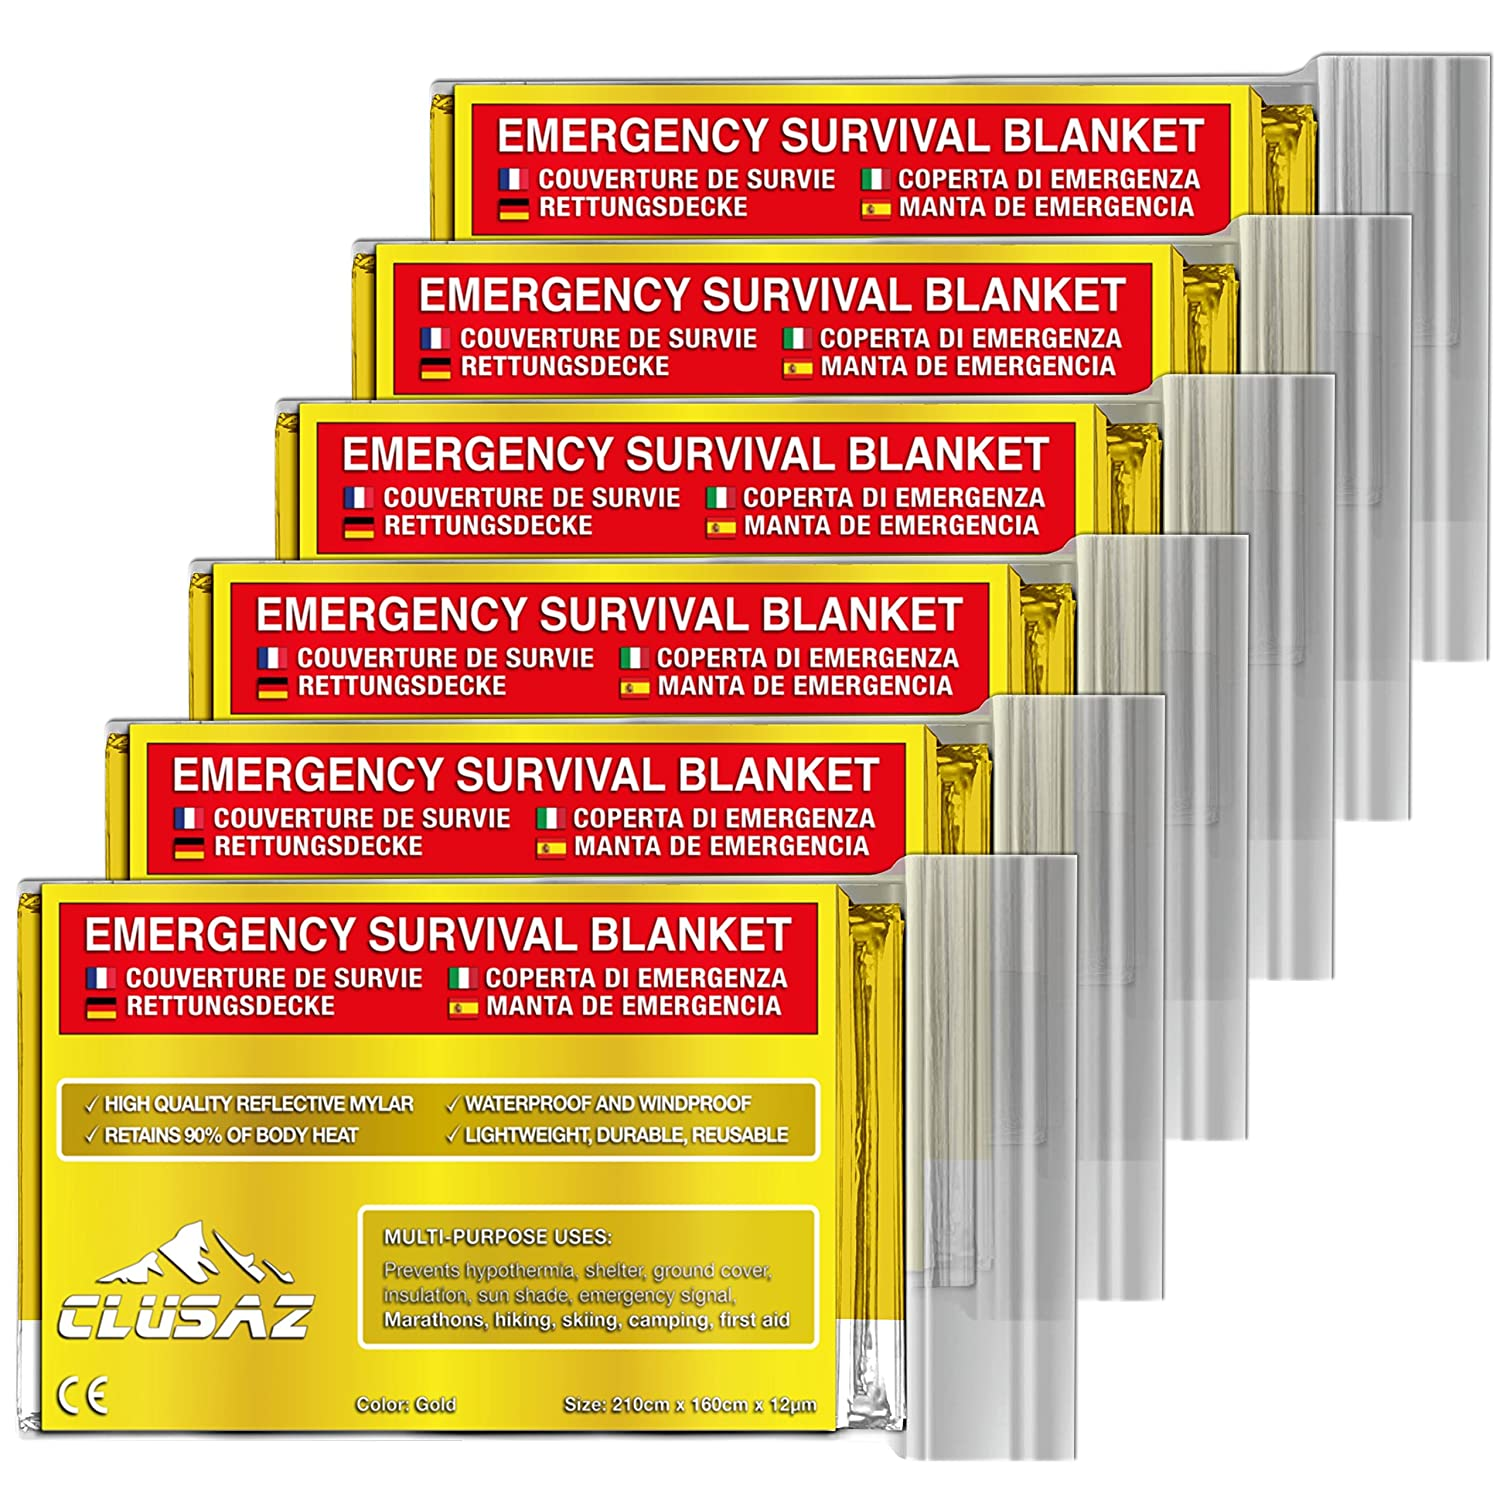 Large 210cm x 160cm Survival Thermal Protection for First Aid Kit and Rescue Bag made of Reflective Mylar to Prevent Hypothermia CLUSAZ 6 Pack Emergency Foil Blanket XL